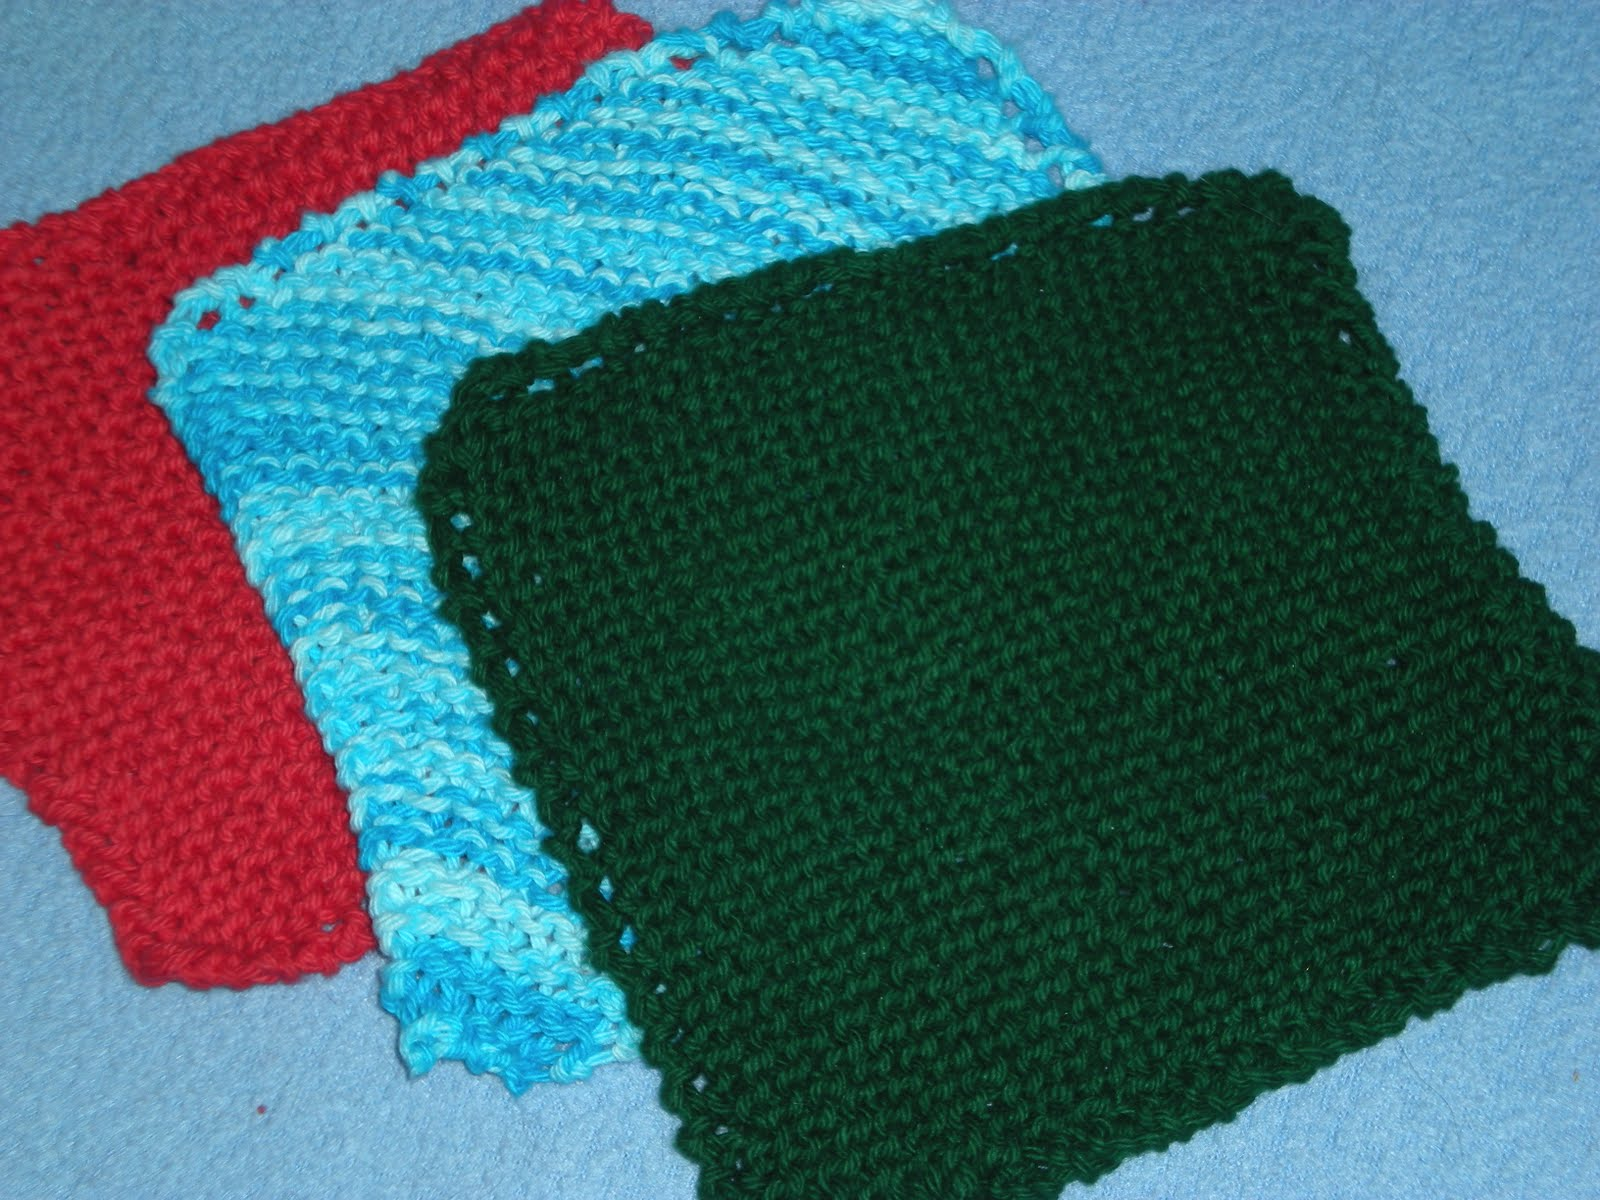 Knitted Dishcloth Patterns : KNITTED PATTERNS FOR DISHCLOTHS   Browse Patterns